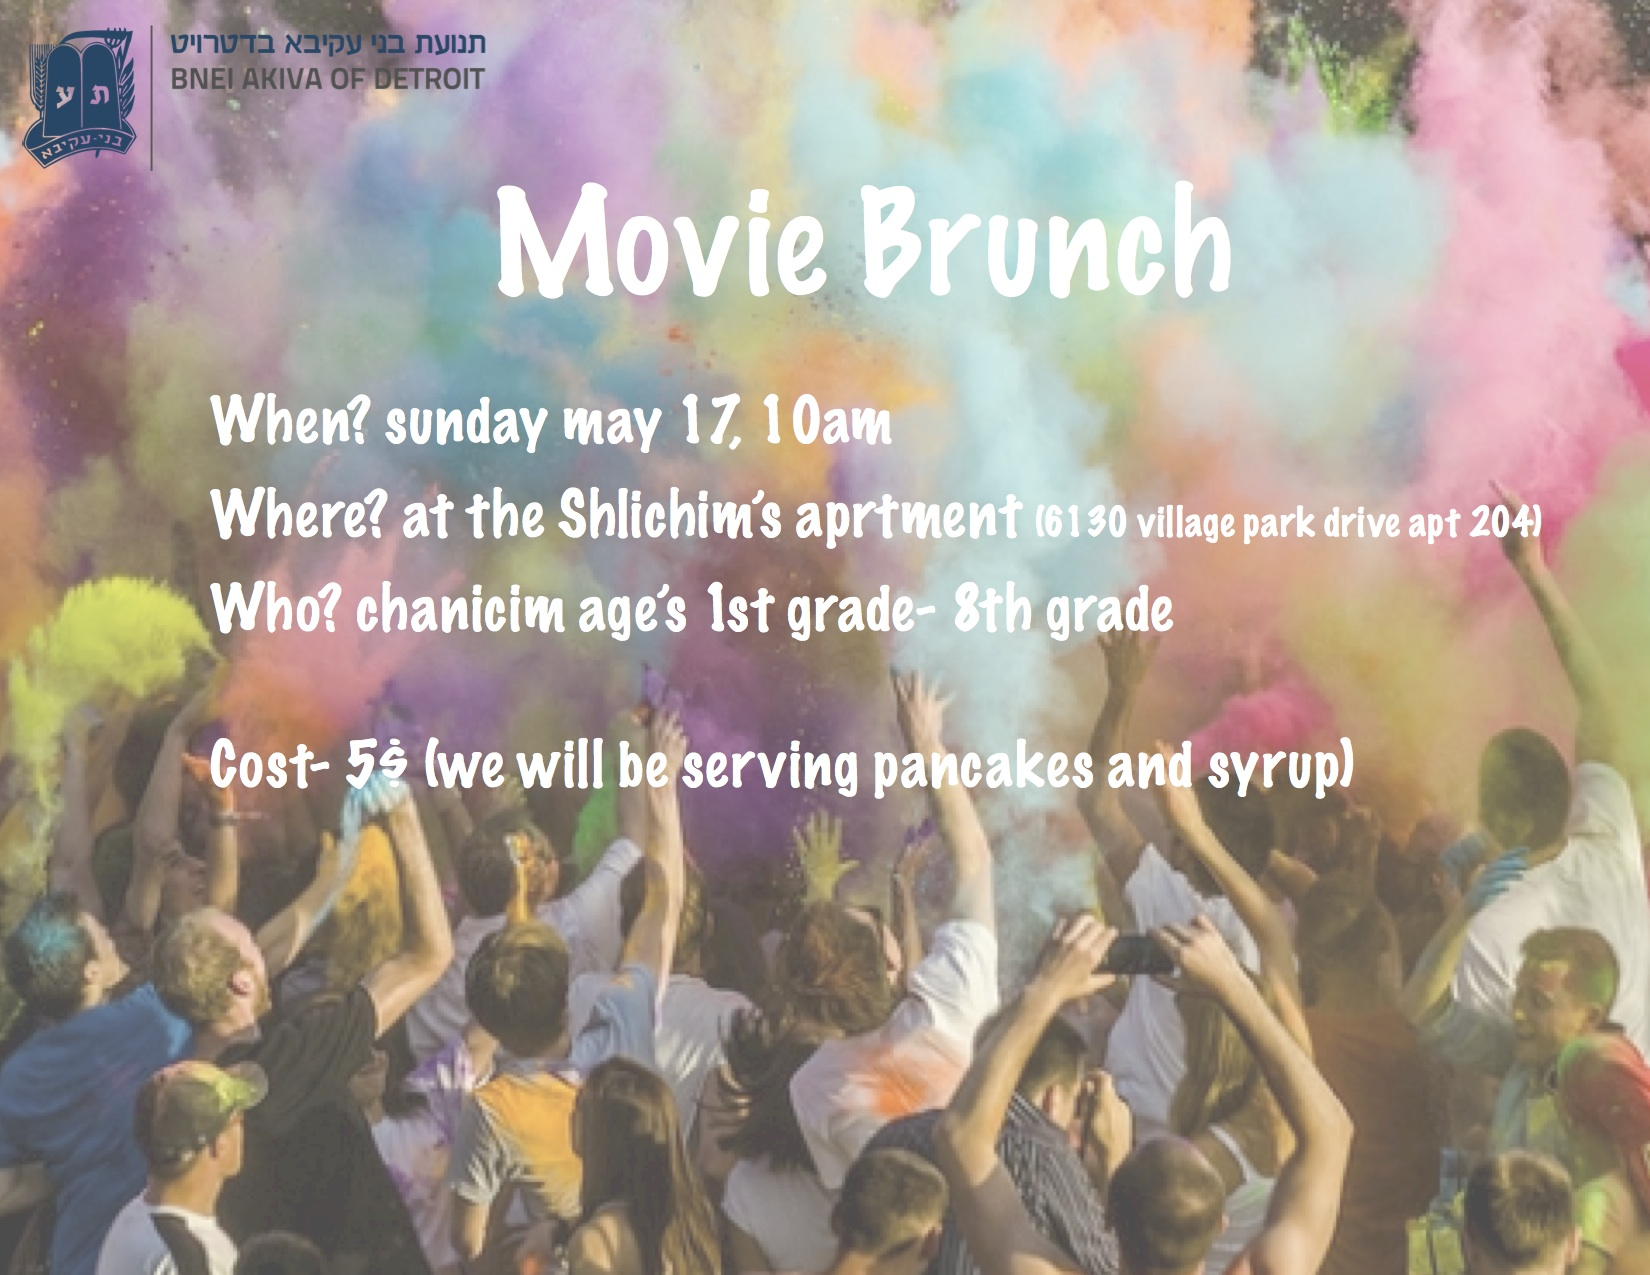 movie brunch